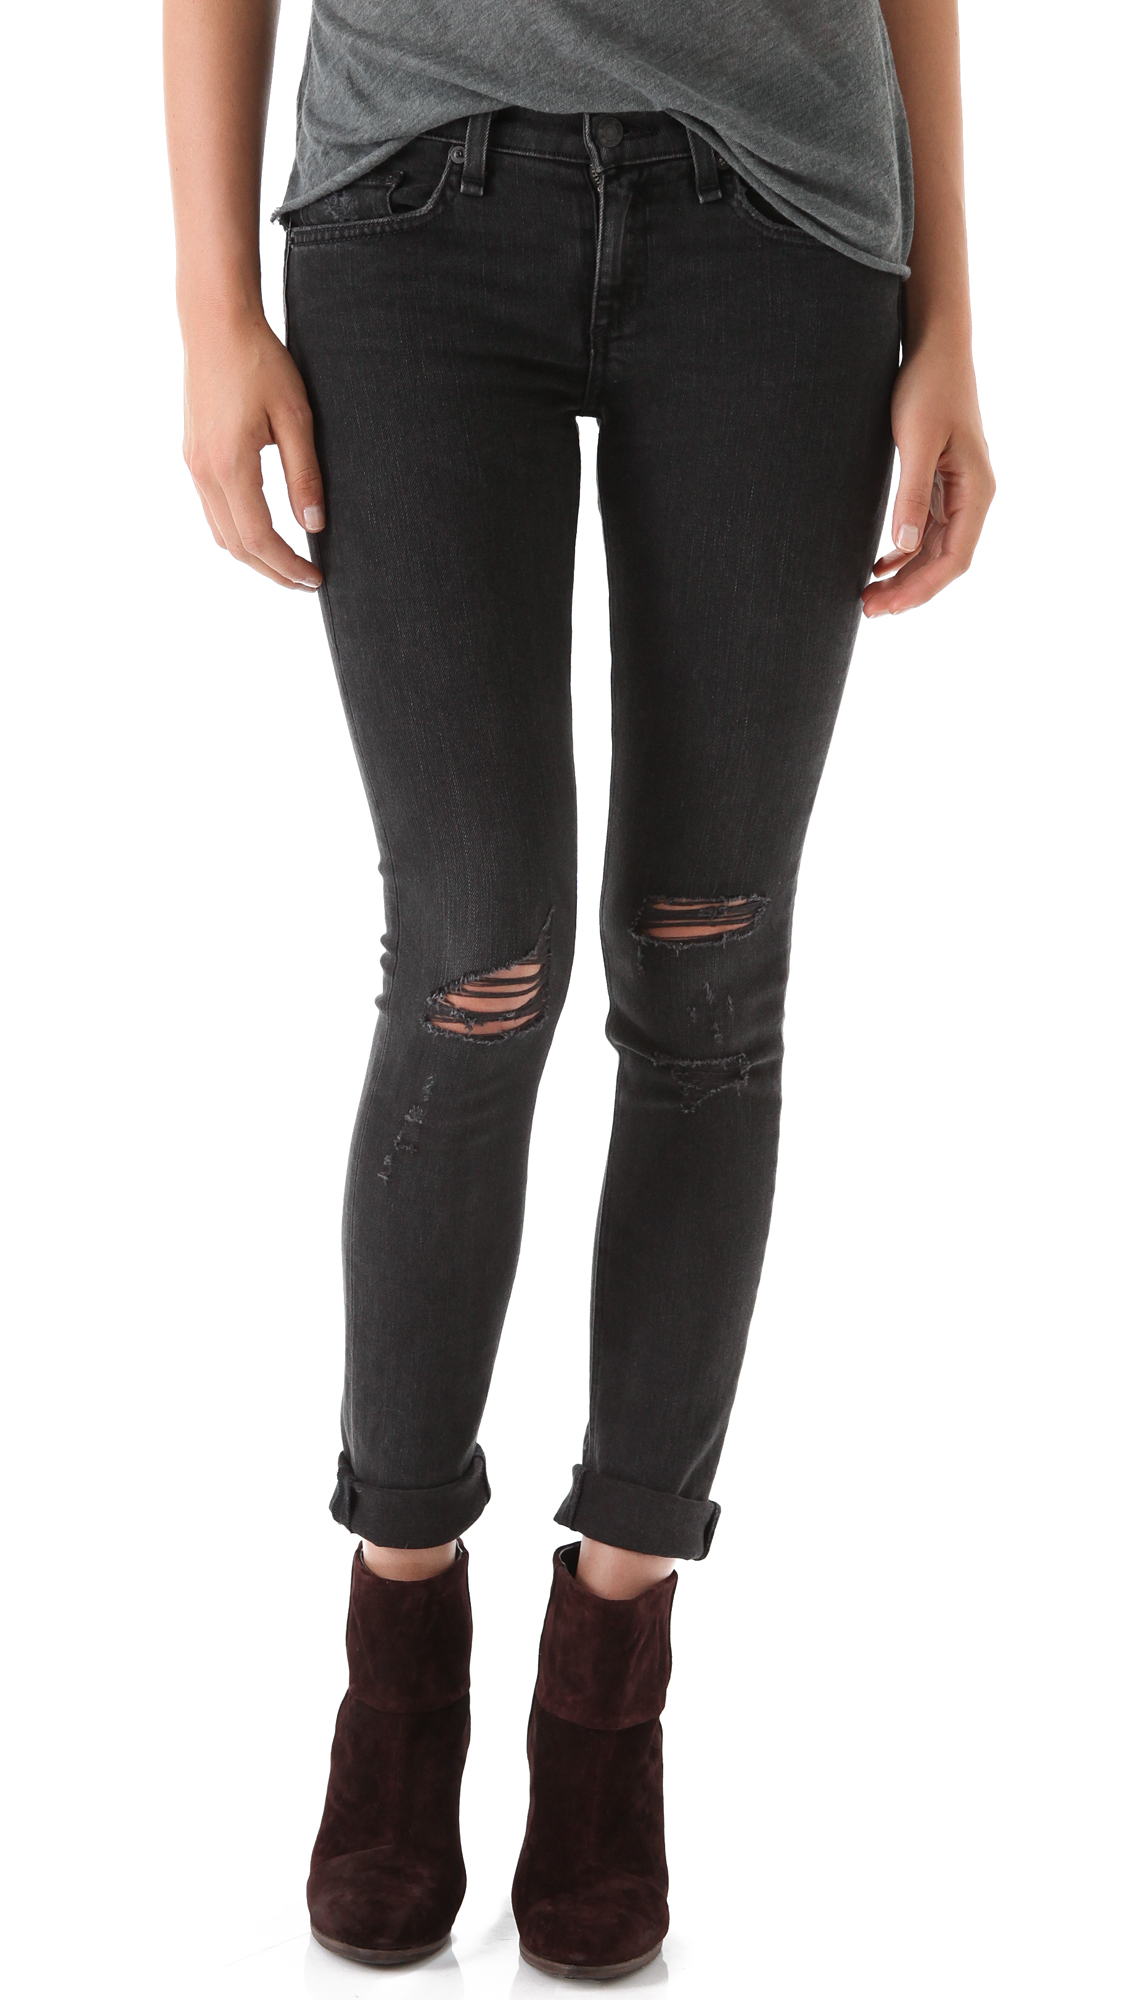 Rag And Bone Black Ripped Jeans - Jeans Am